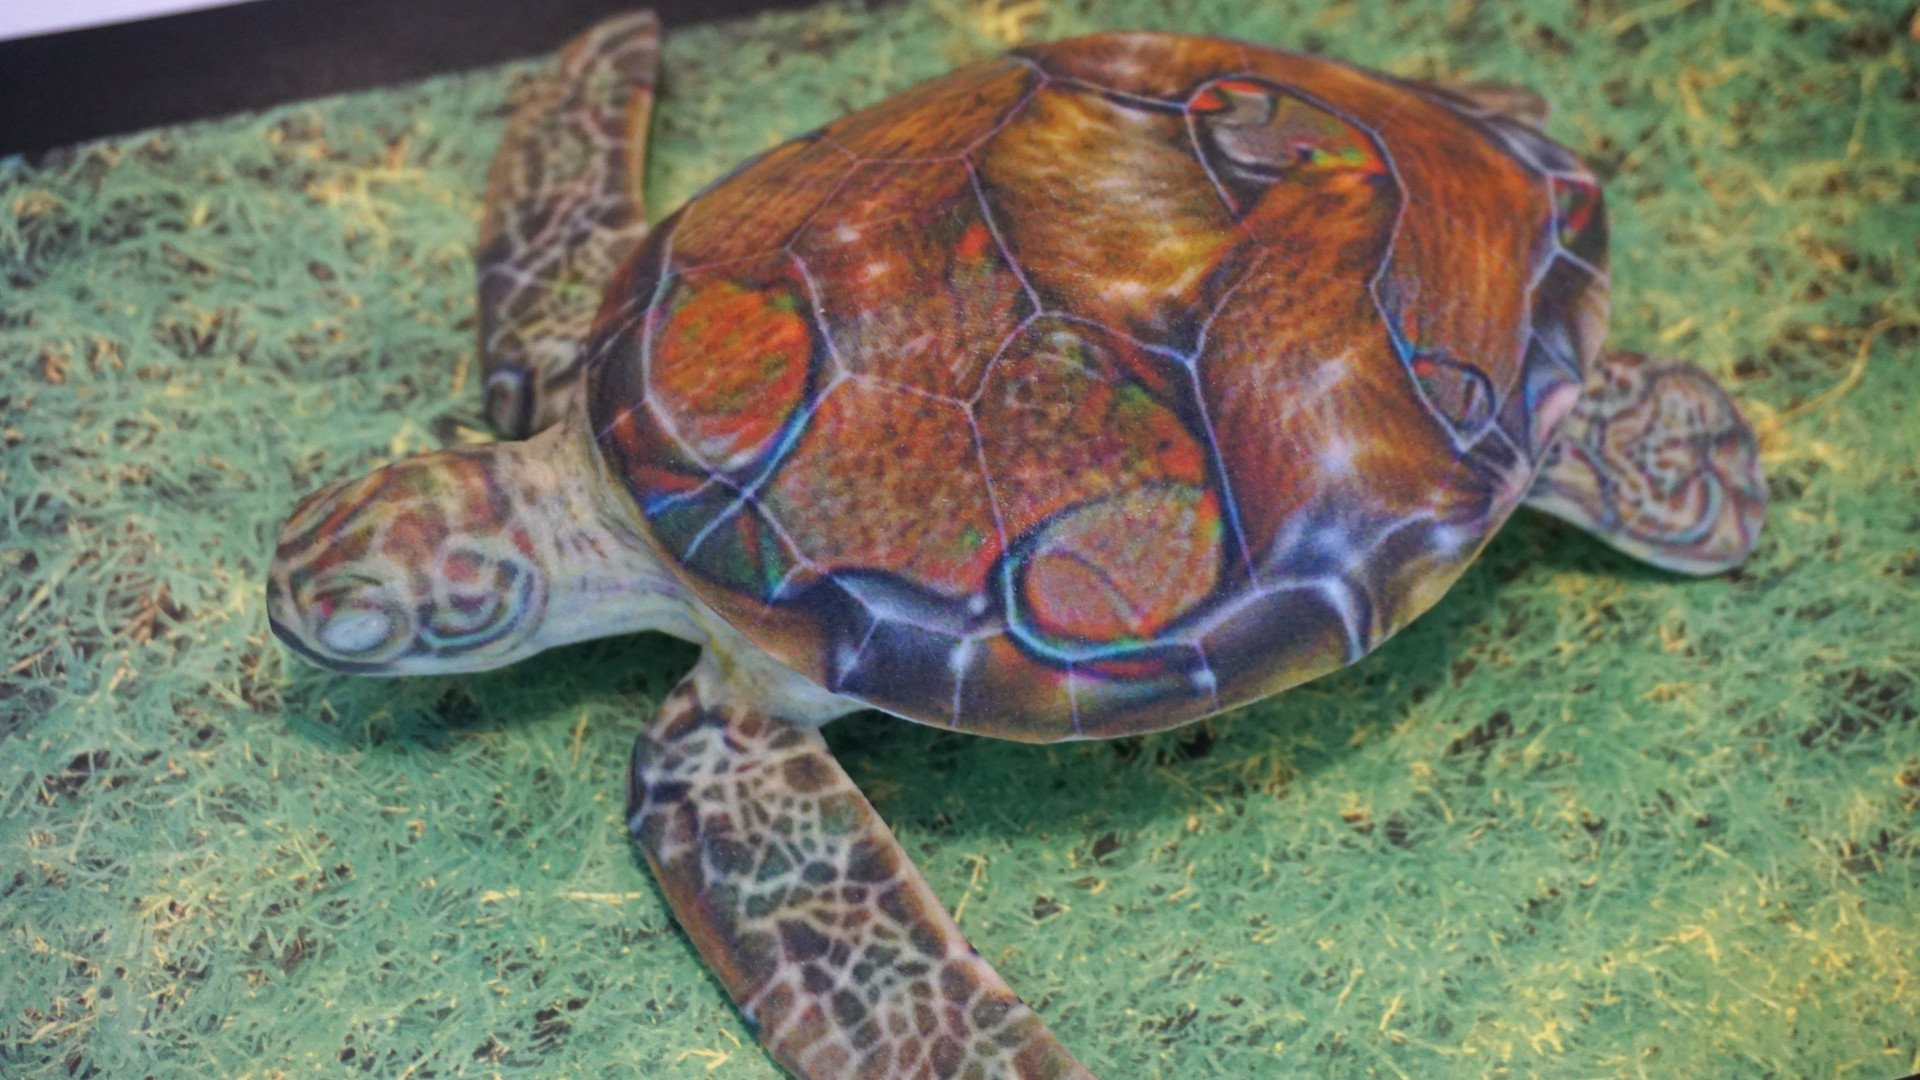 Neural Network Tricked into Thinking 3D Printed Turtle is a Rifle | All3DP